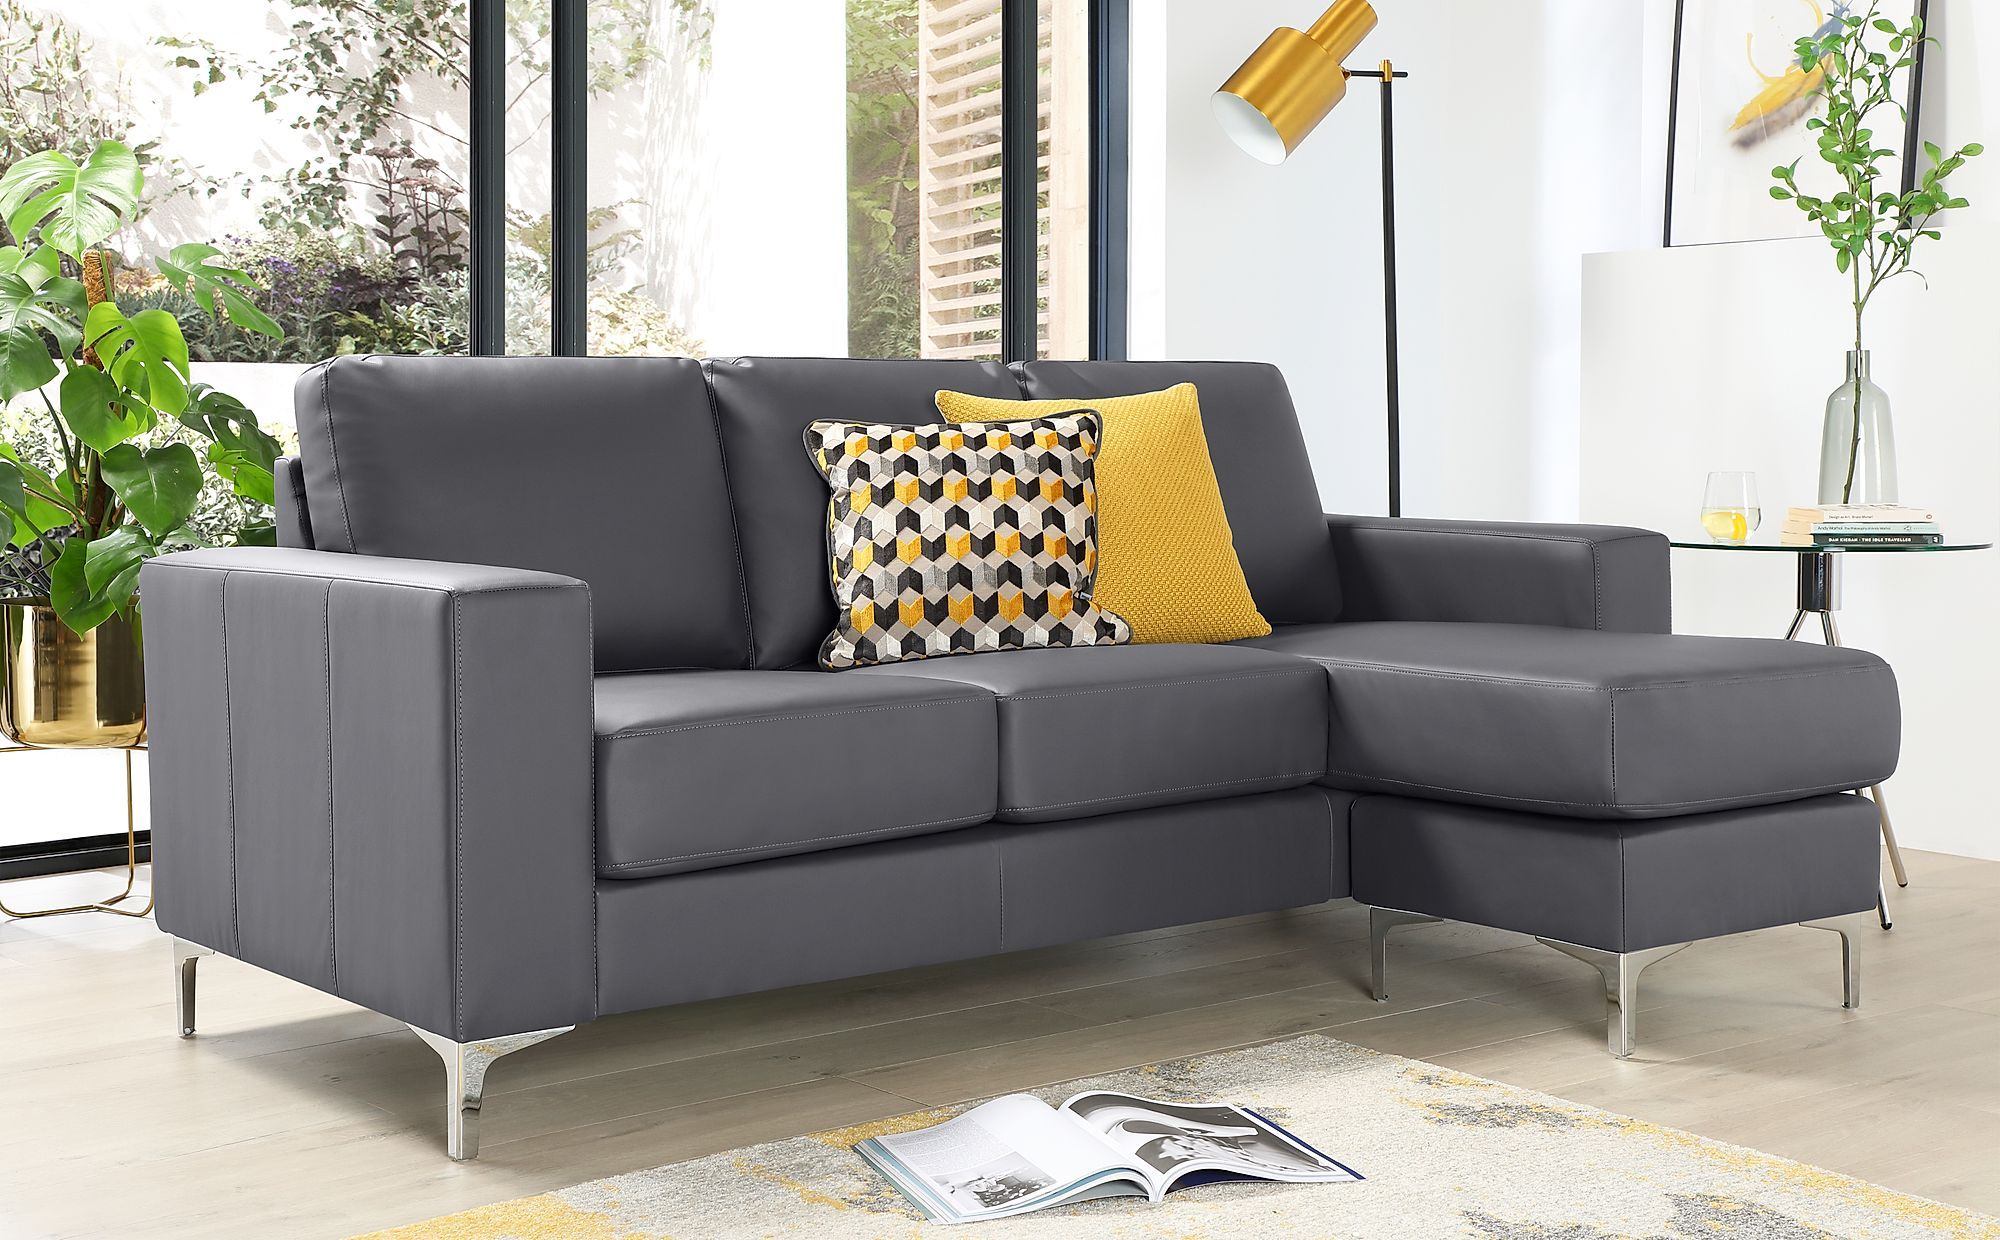 Baltimore Grey Leather Corner Sofa L Shape Only £499.99 | Furniture ...